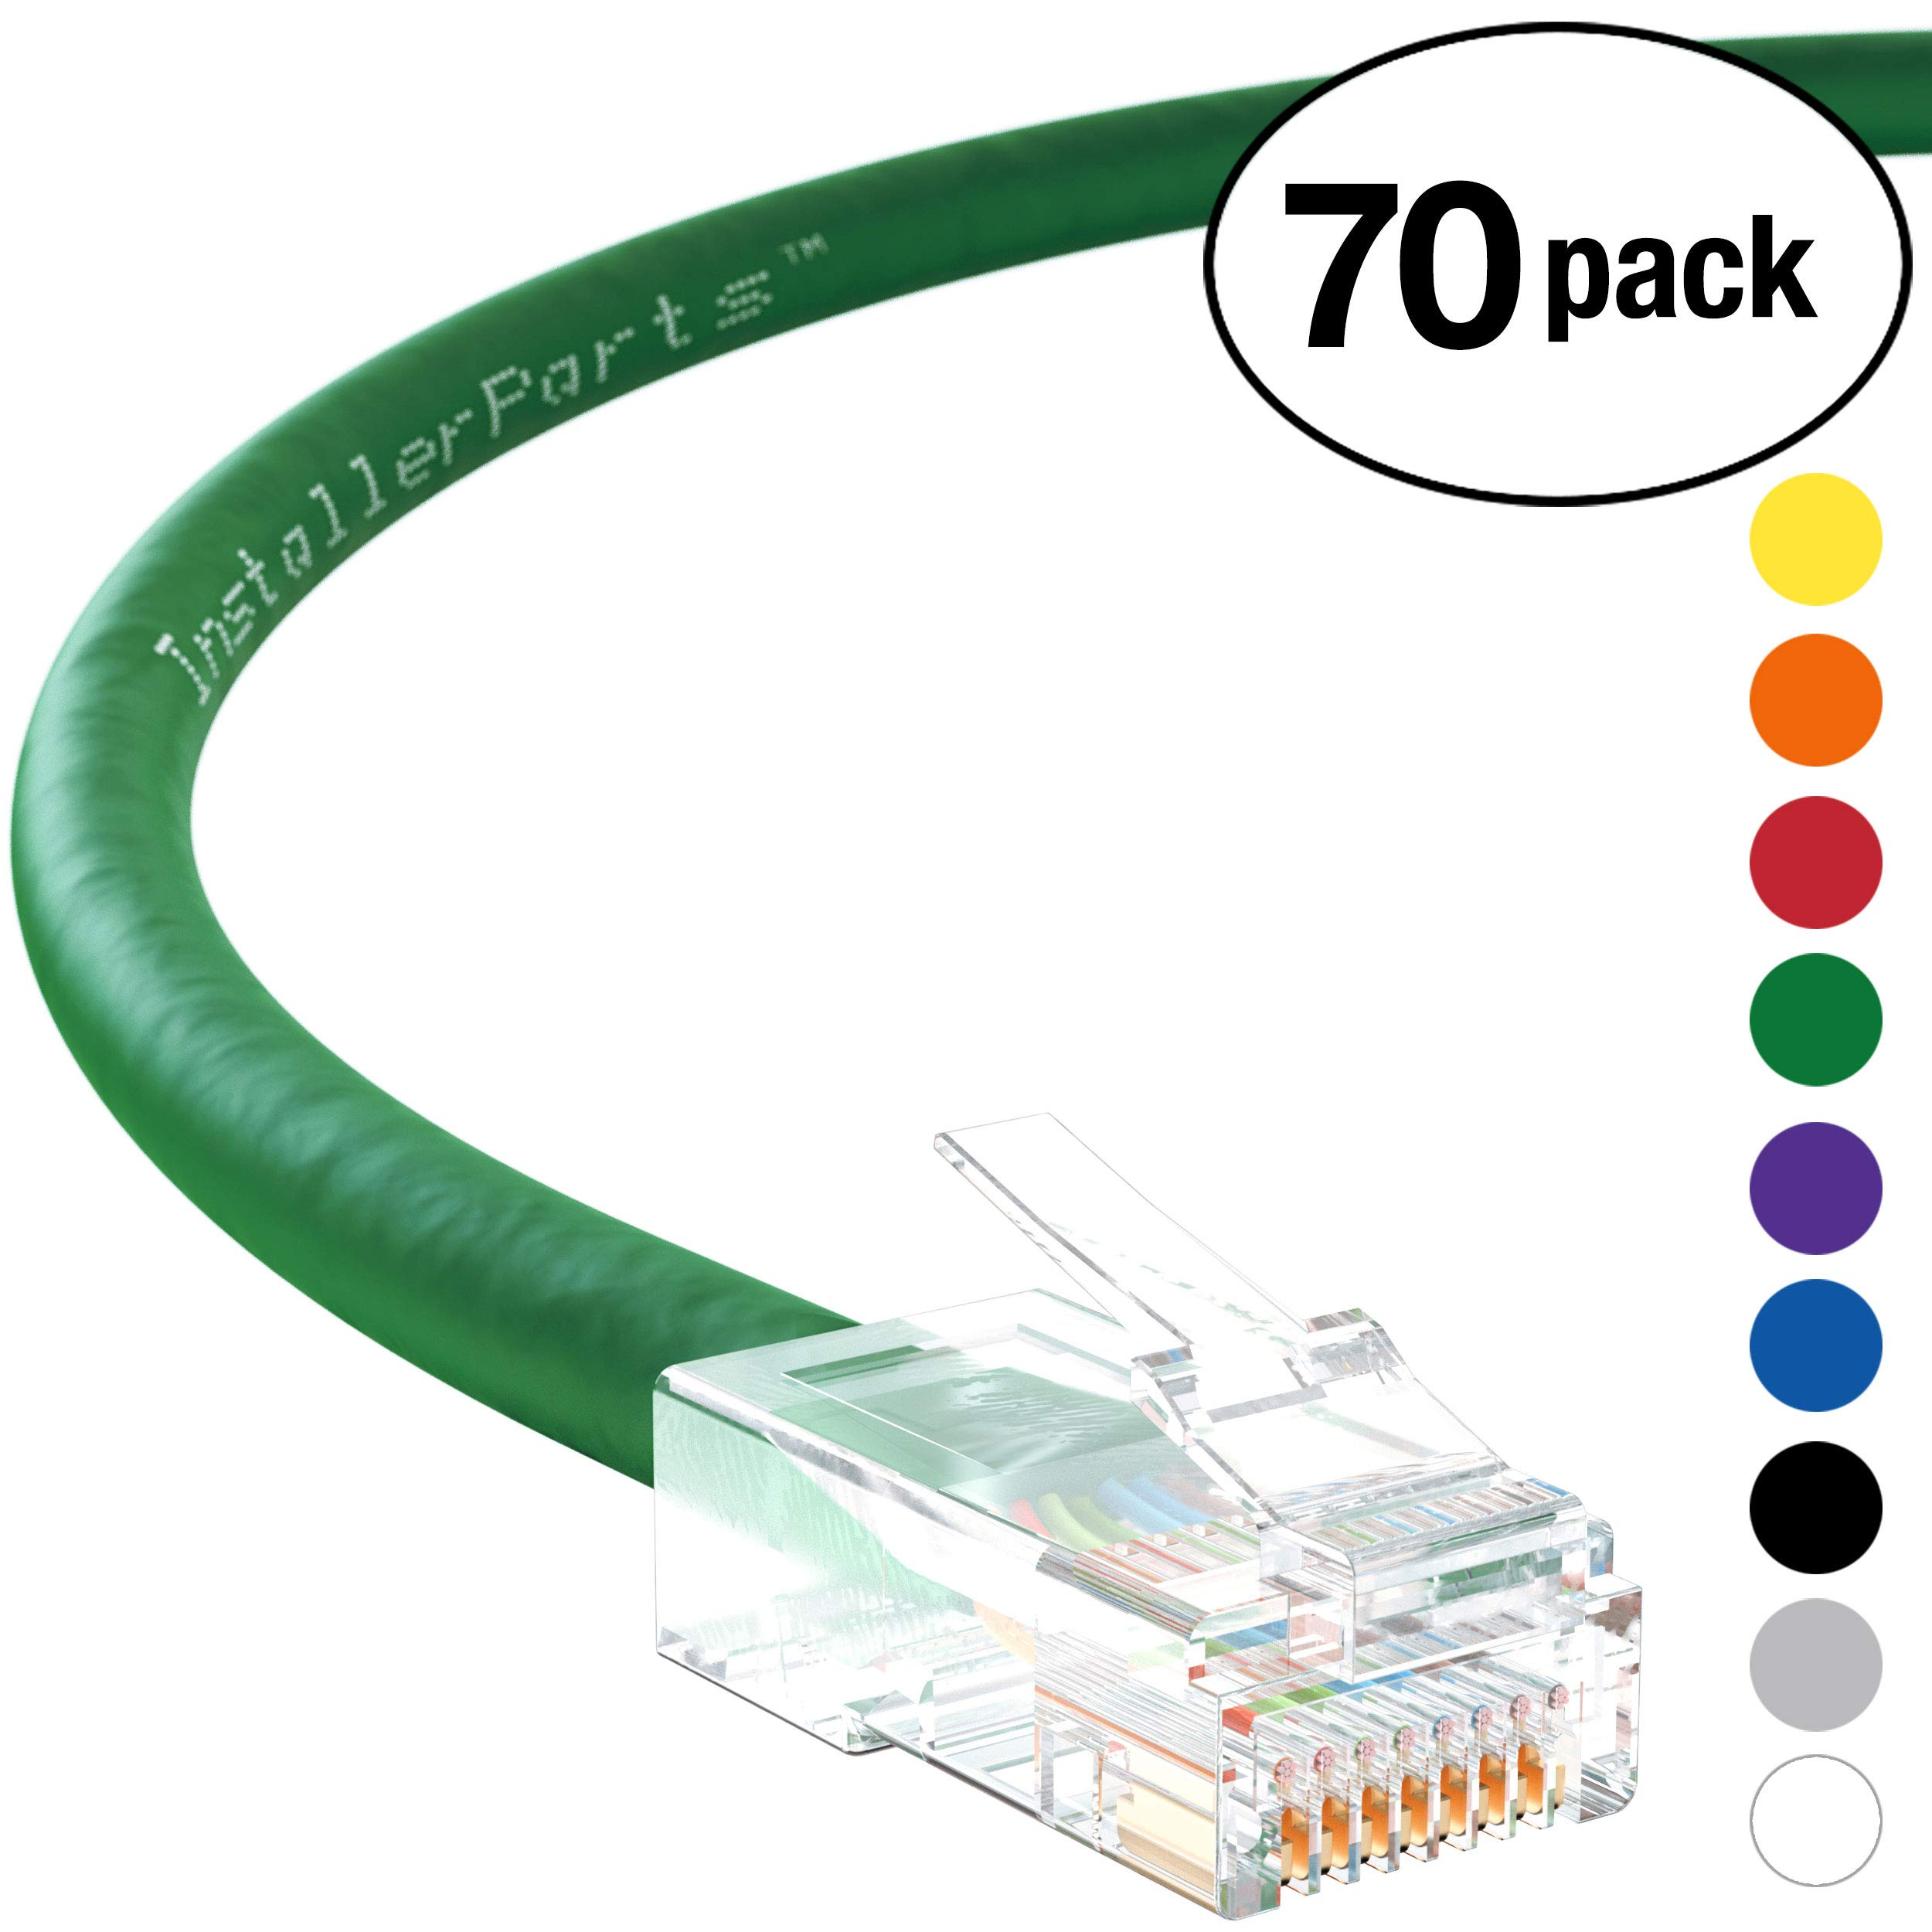 InstallerParts (70 Pack) Ethernet Cable CAT6 Cable UTP Non-Booted 15 FT - Green - Professional Series - 10Gigabit/Sec Network/High Speed Internet Cable, 550MHZ by InstallerParts